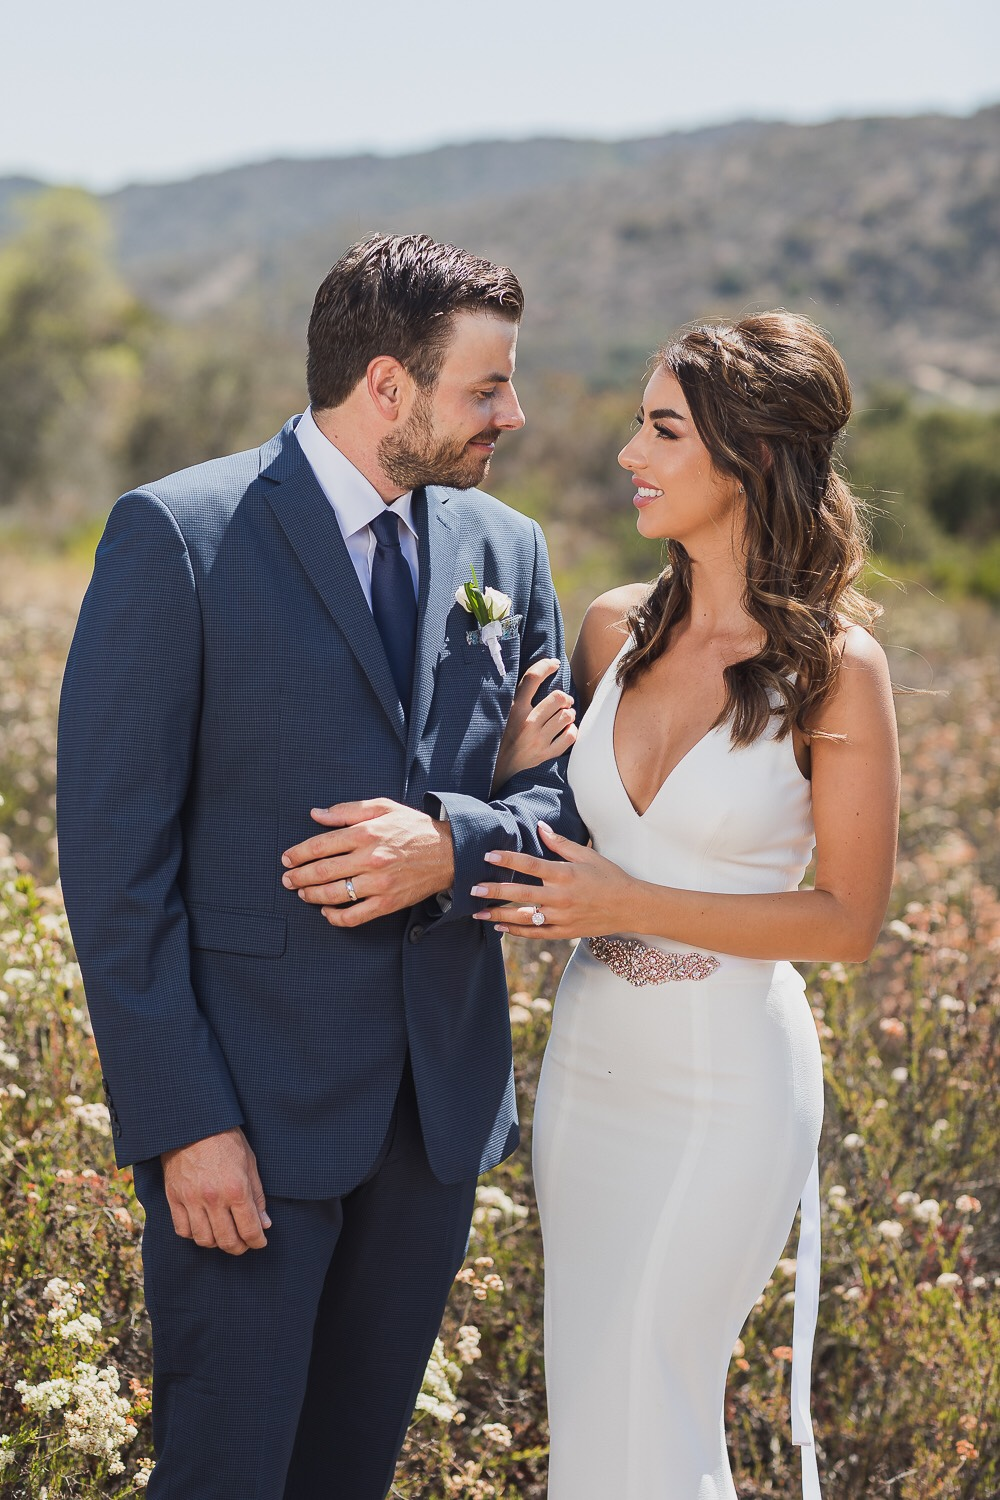 Stunning bride and groom at the james dilley laguna preserve.jpg